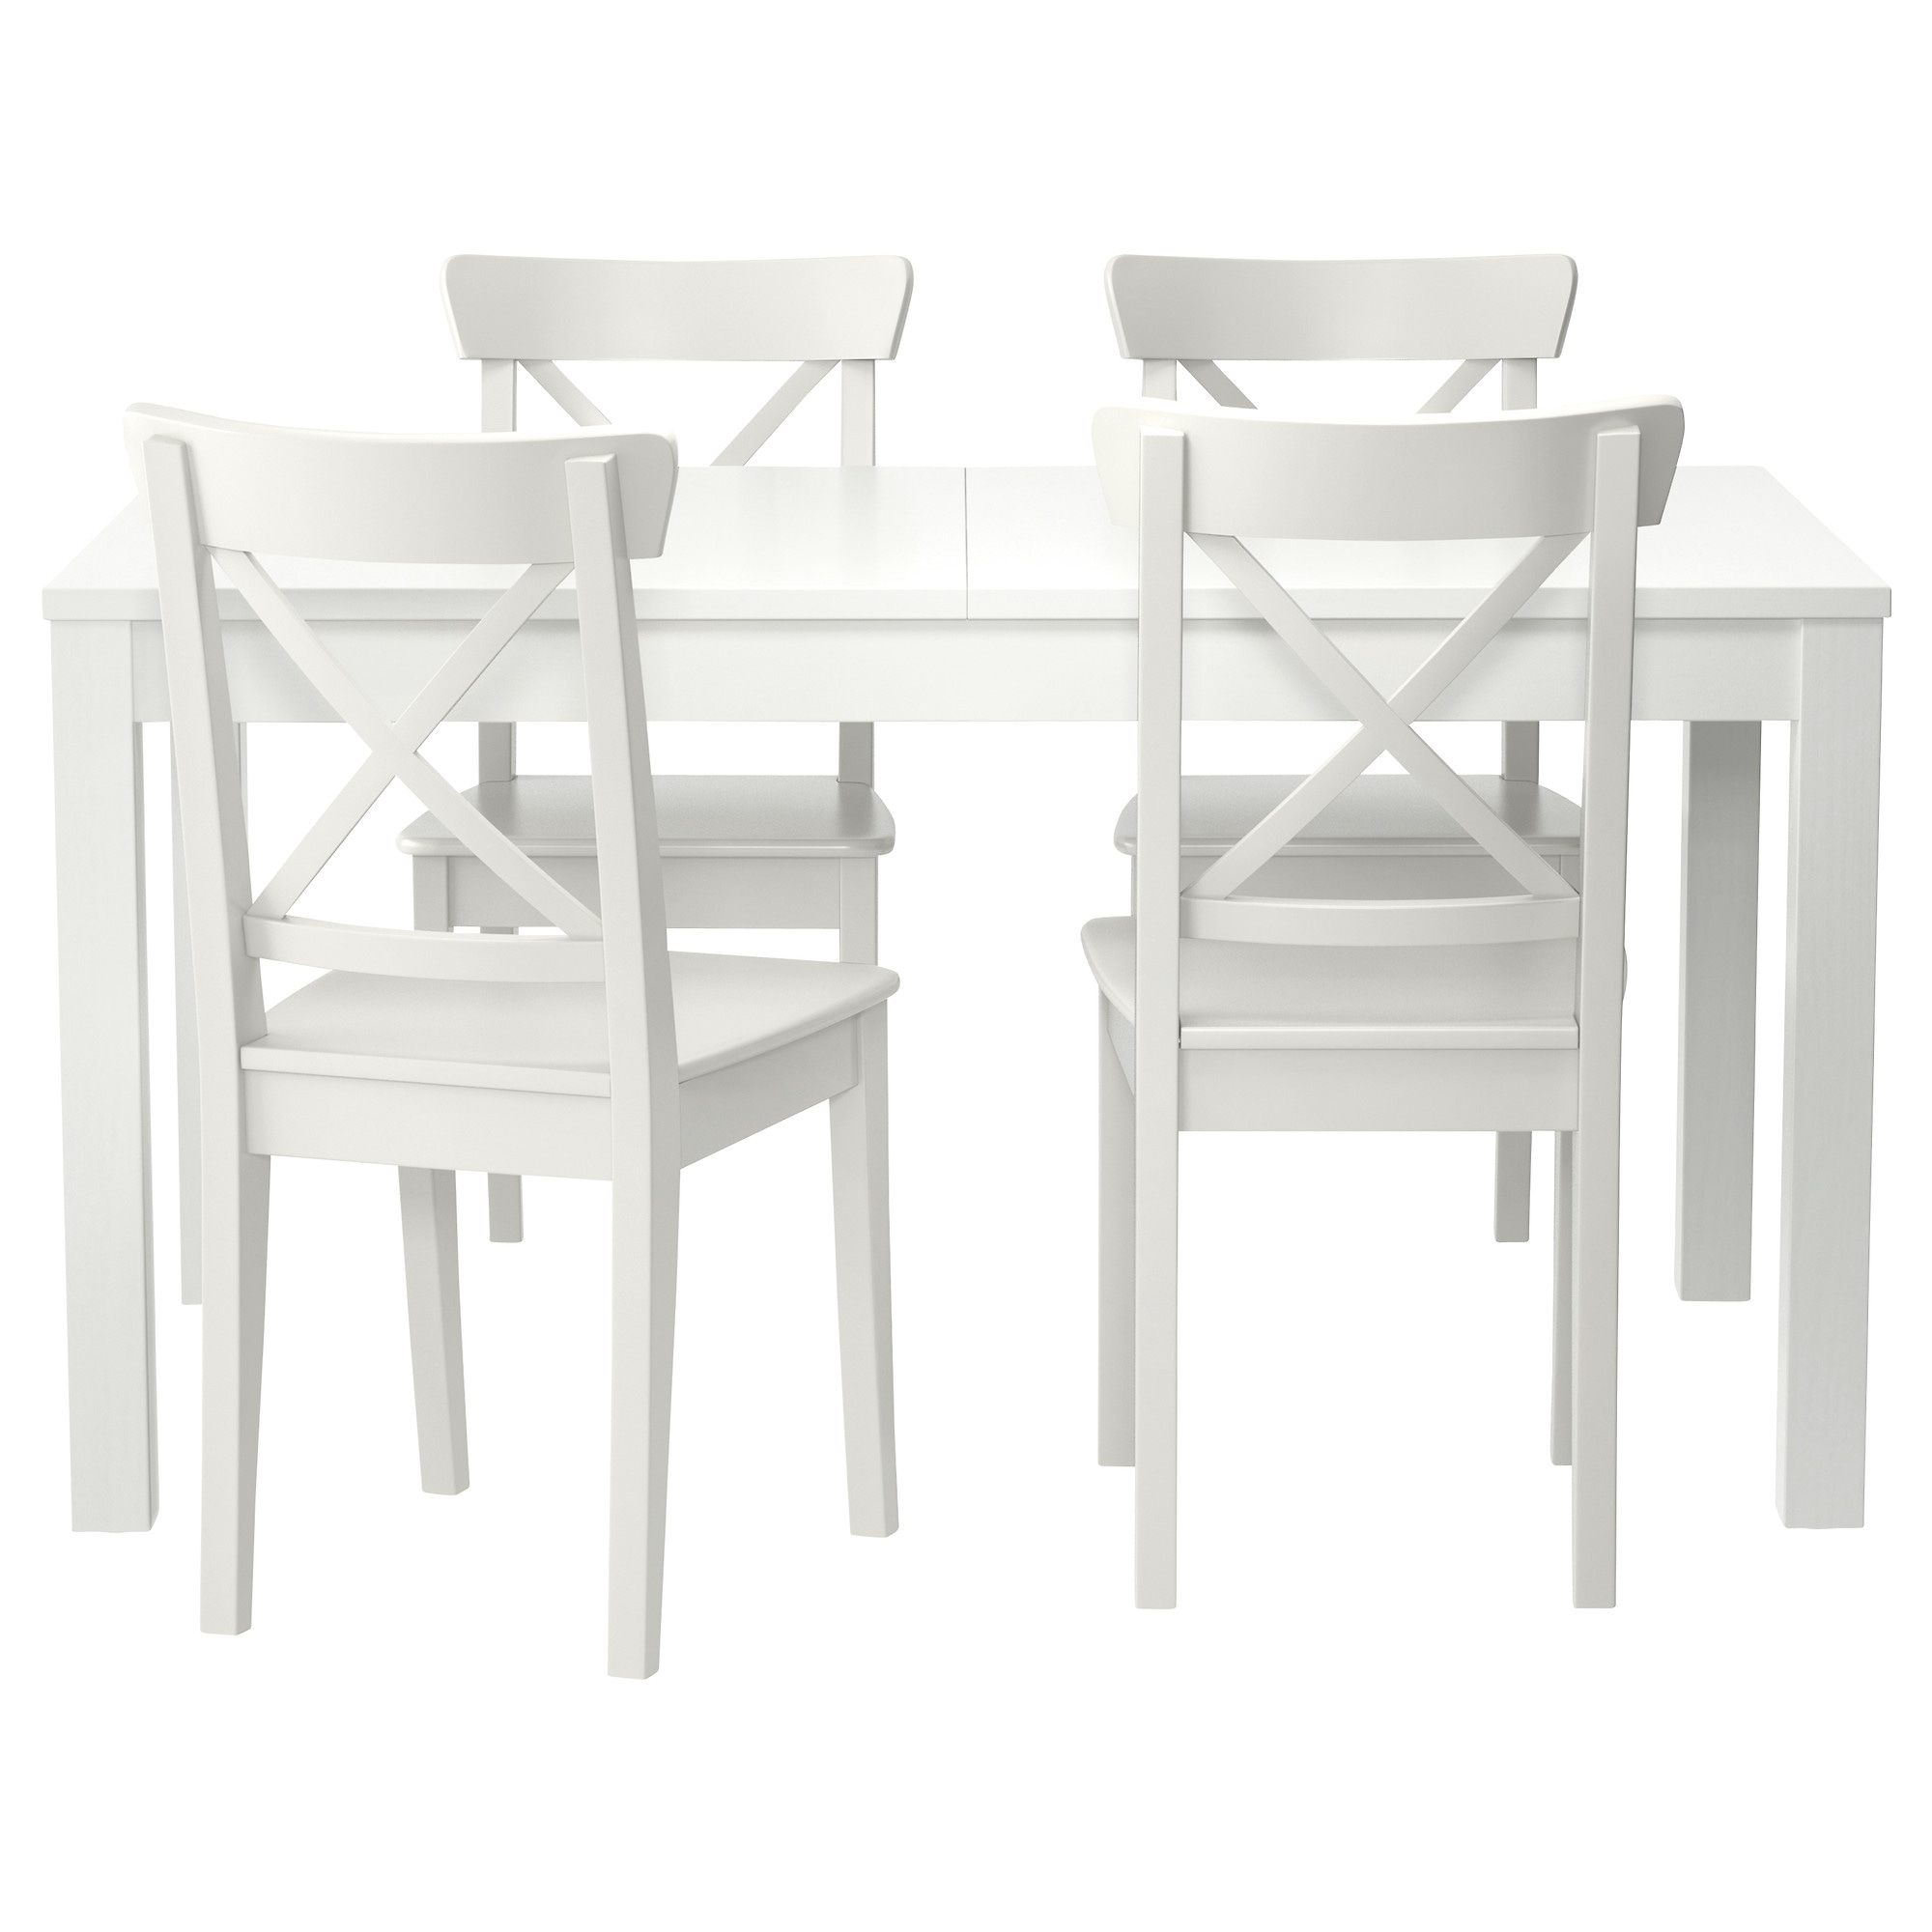 Ikea white dining table and chairs furniture design for Ikea dining table and chairs set